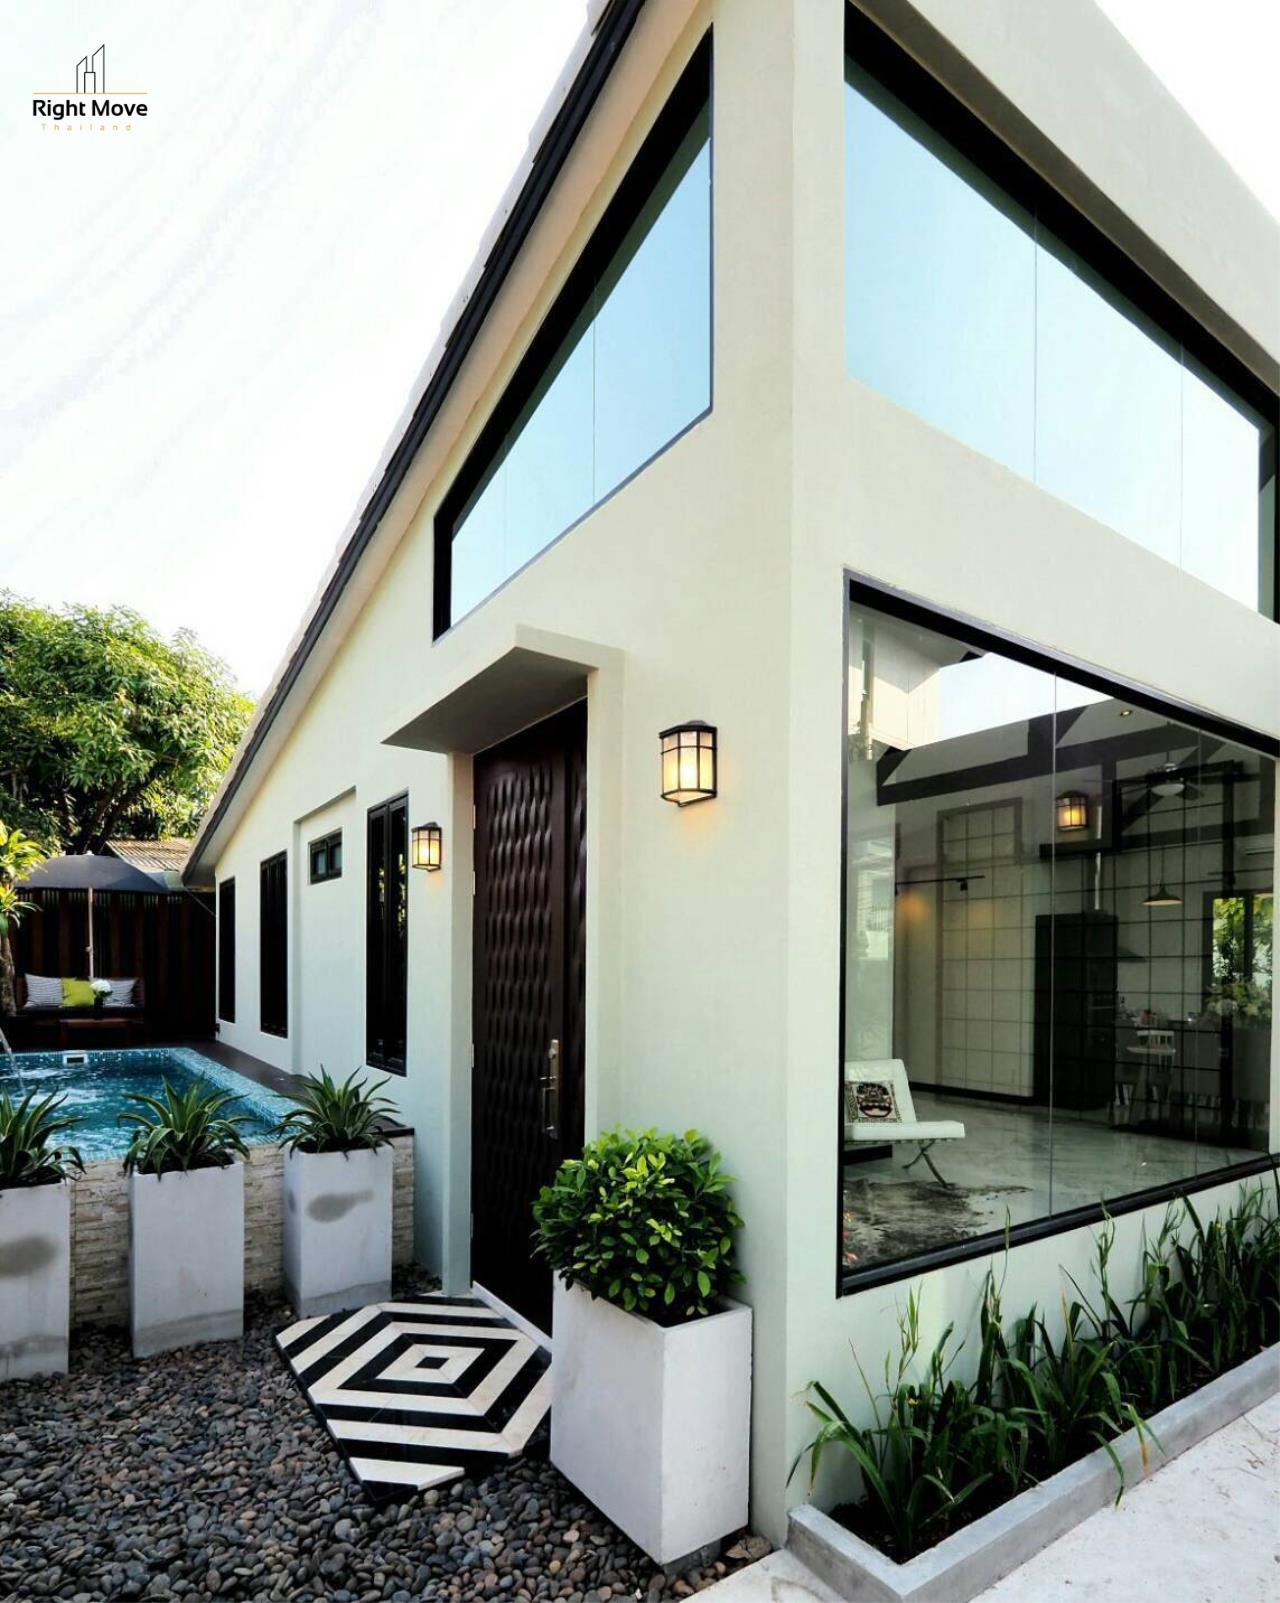 Right Move Thailand Agency's HR874 Single House For Sale 16,500,000 THB 2 Bedrooms 150 Sqm 8